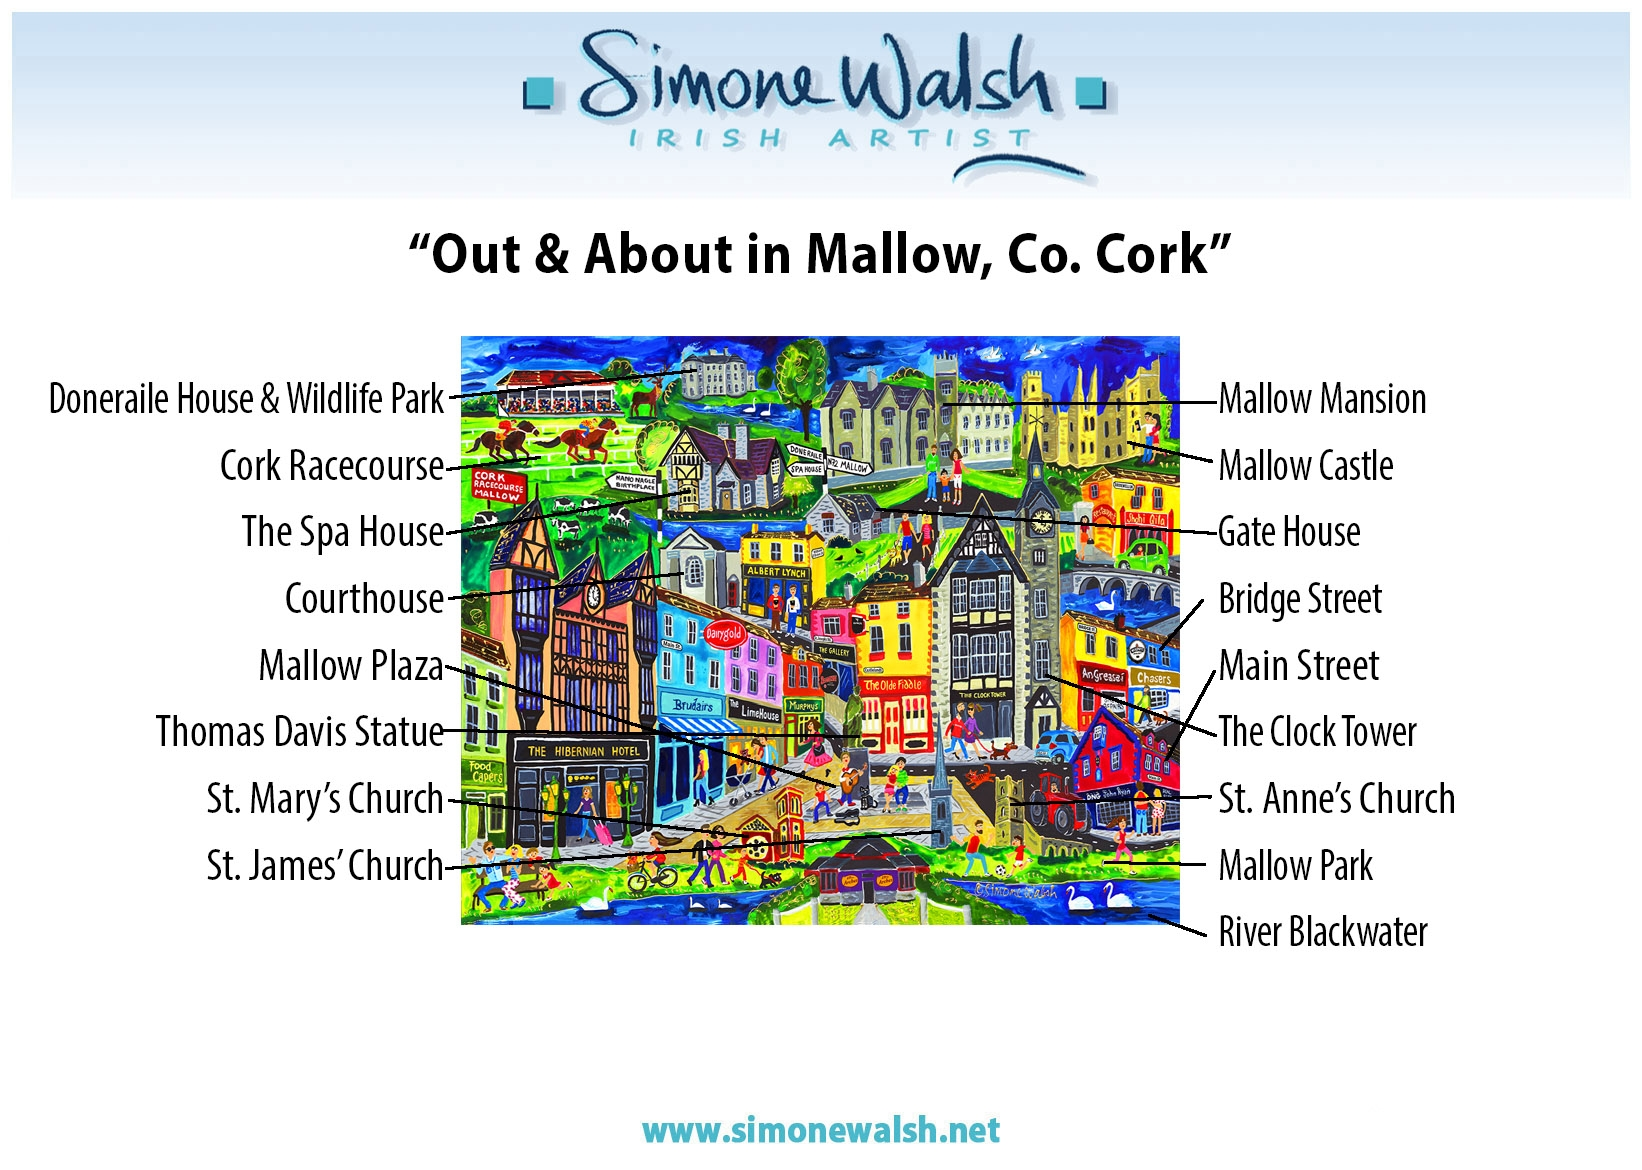 Best Campgrounds in Mallow, Co. Cork 2020 from $19.96